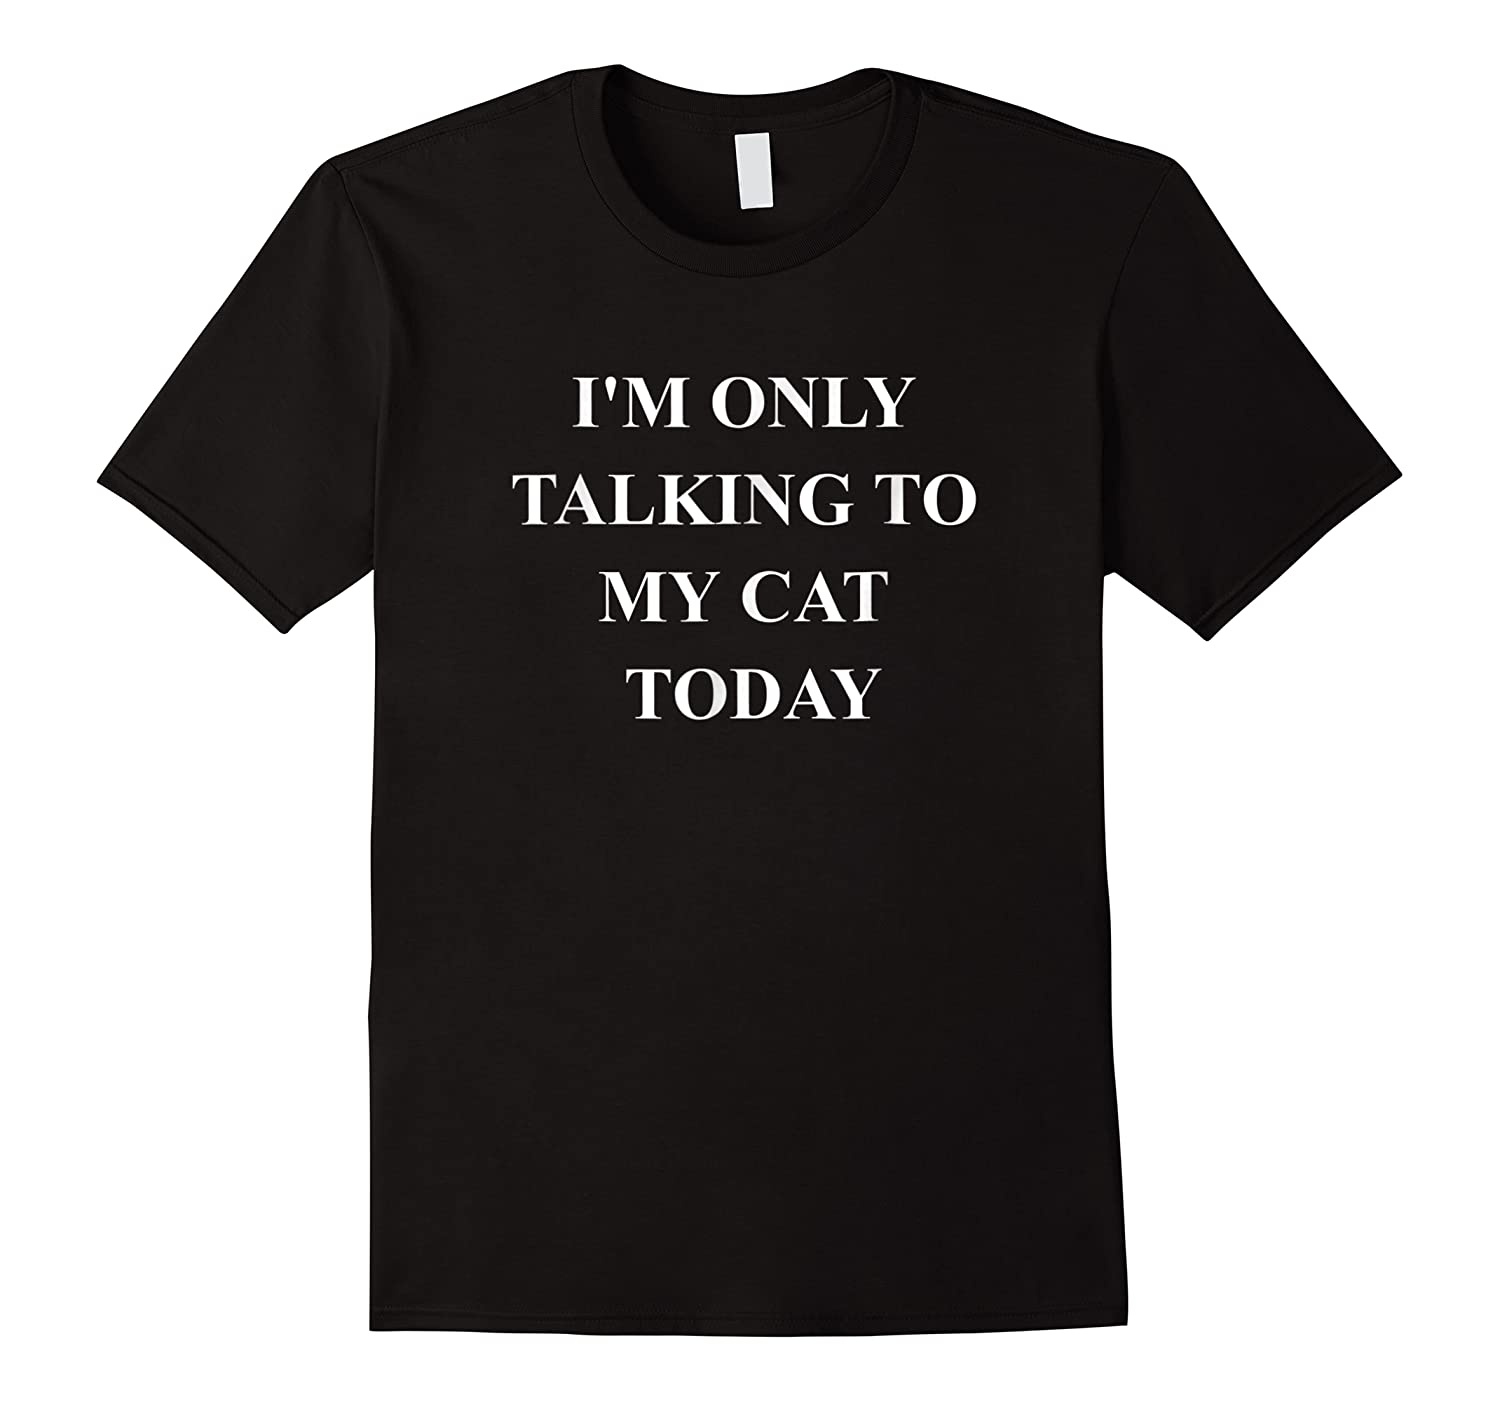 Funny Cat Quote Shirts - Gifts For Cat Moms Lovers For